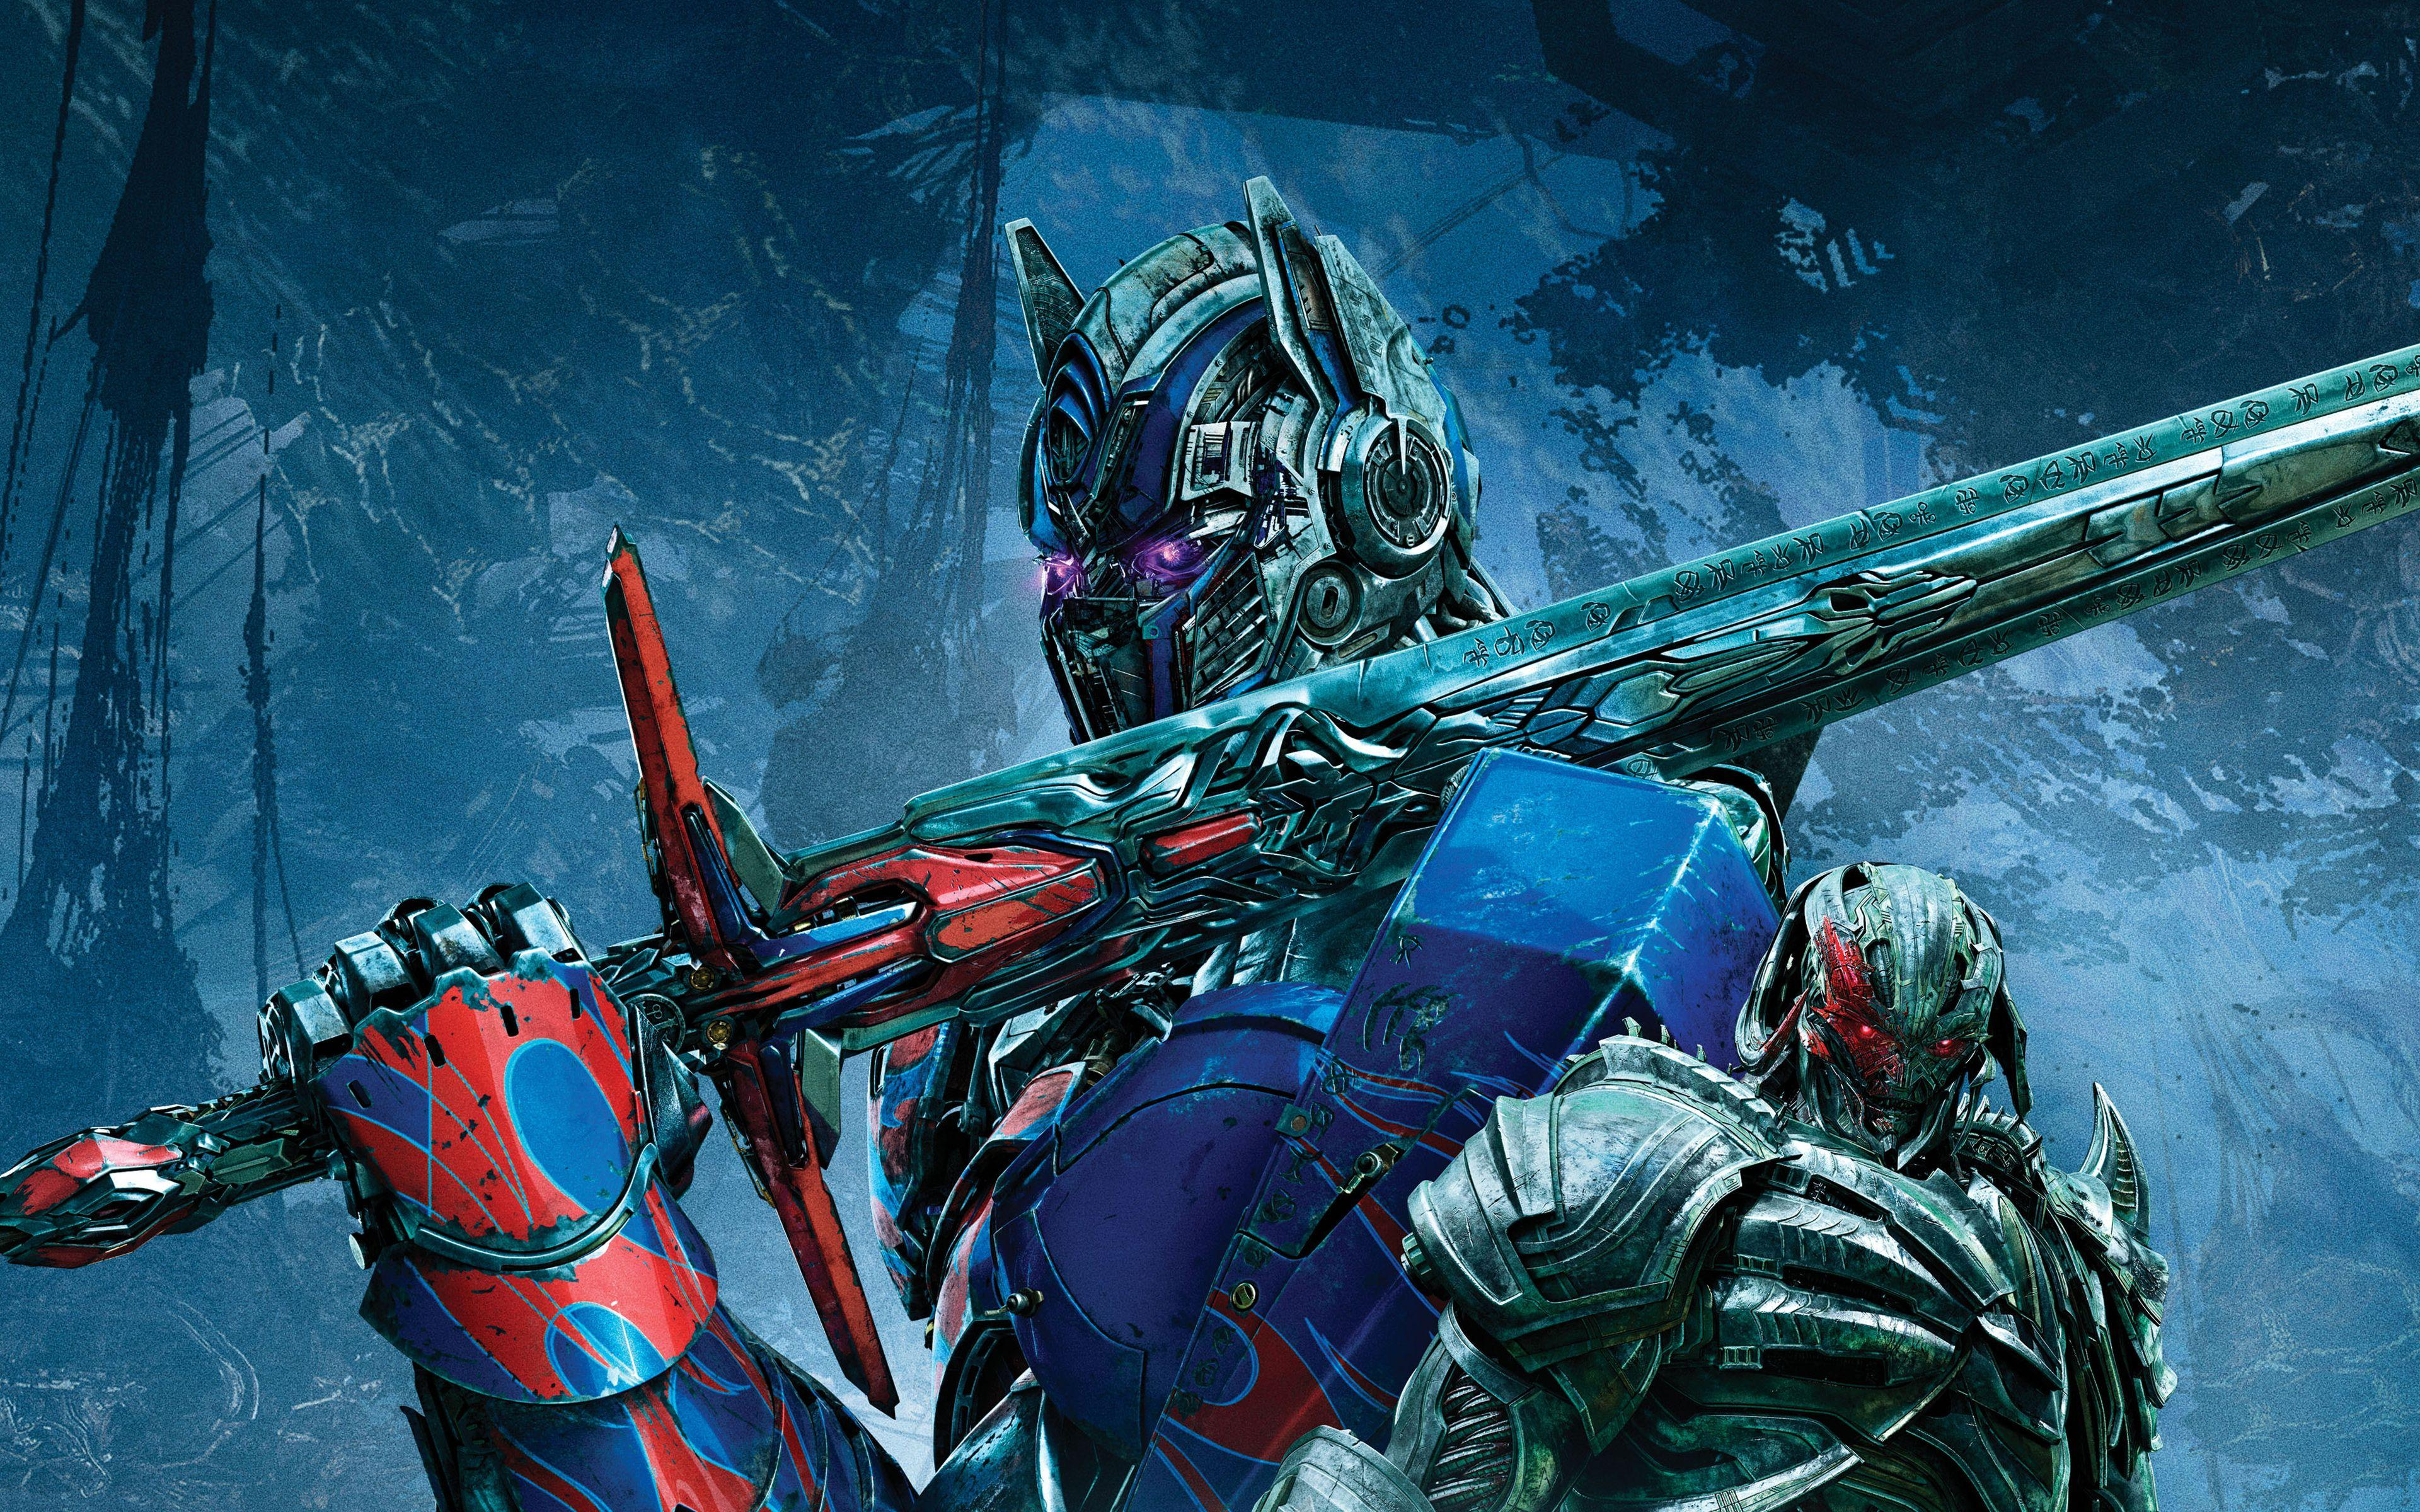 Transformers The Last Knight Optimus Prime 5K Wallpapers